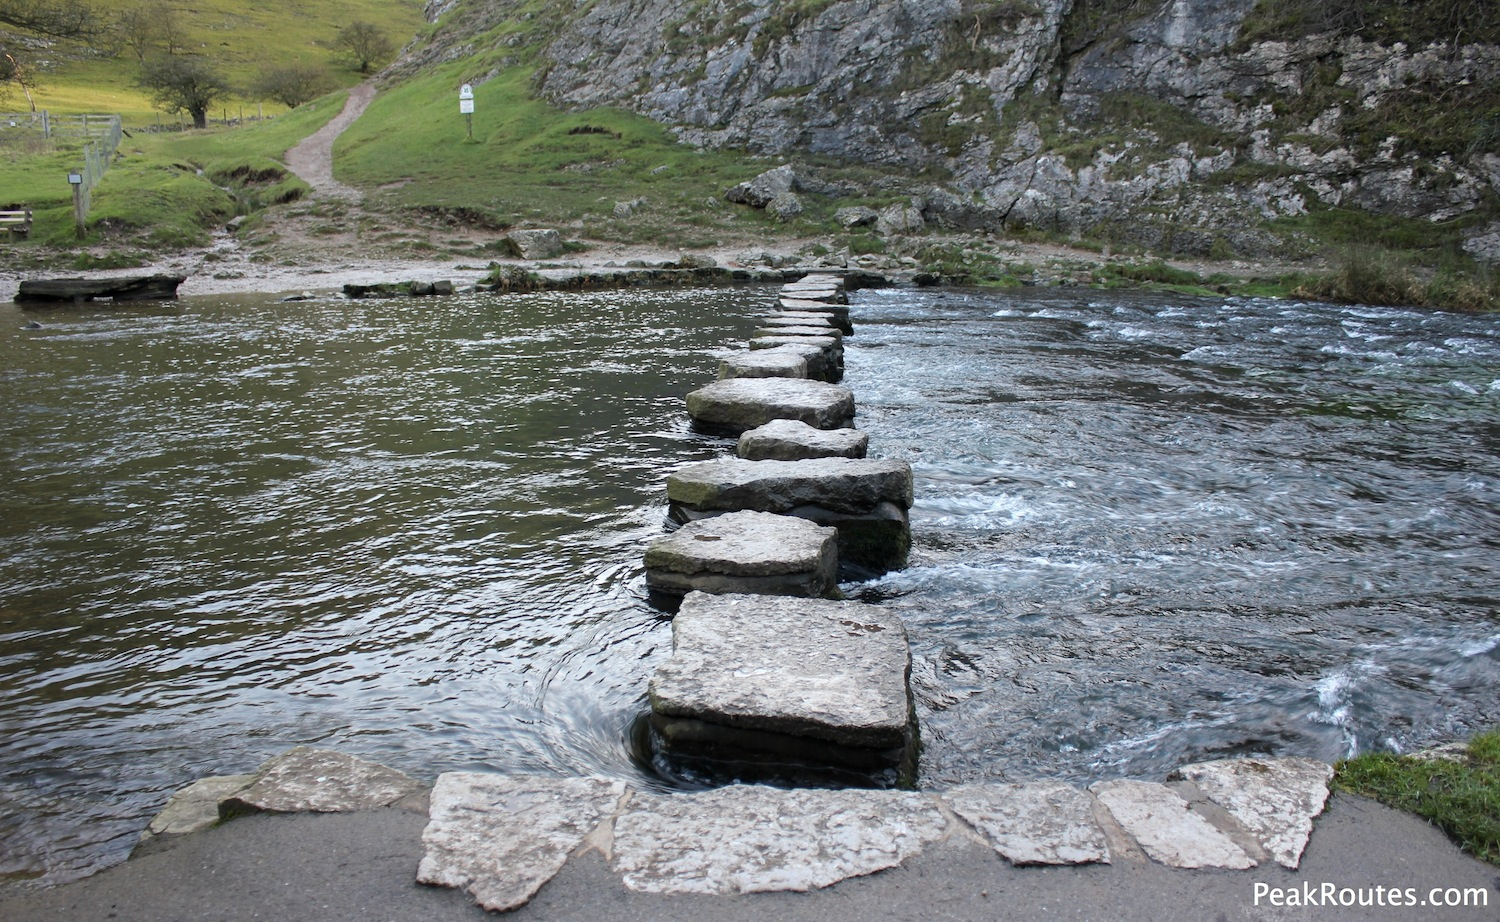 Razflections – Reflections on Business, Life, and Pursuing ... Stepping Stones